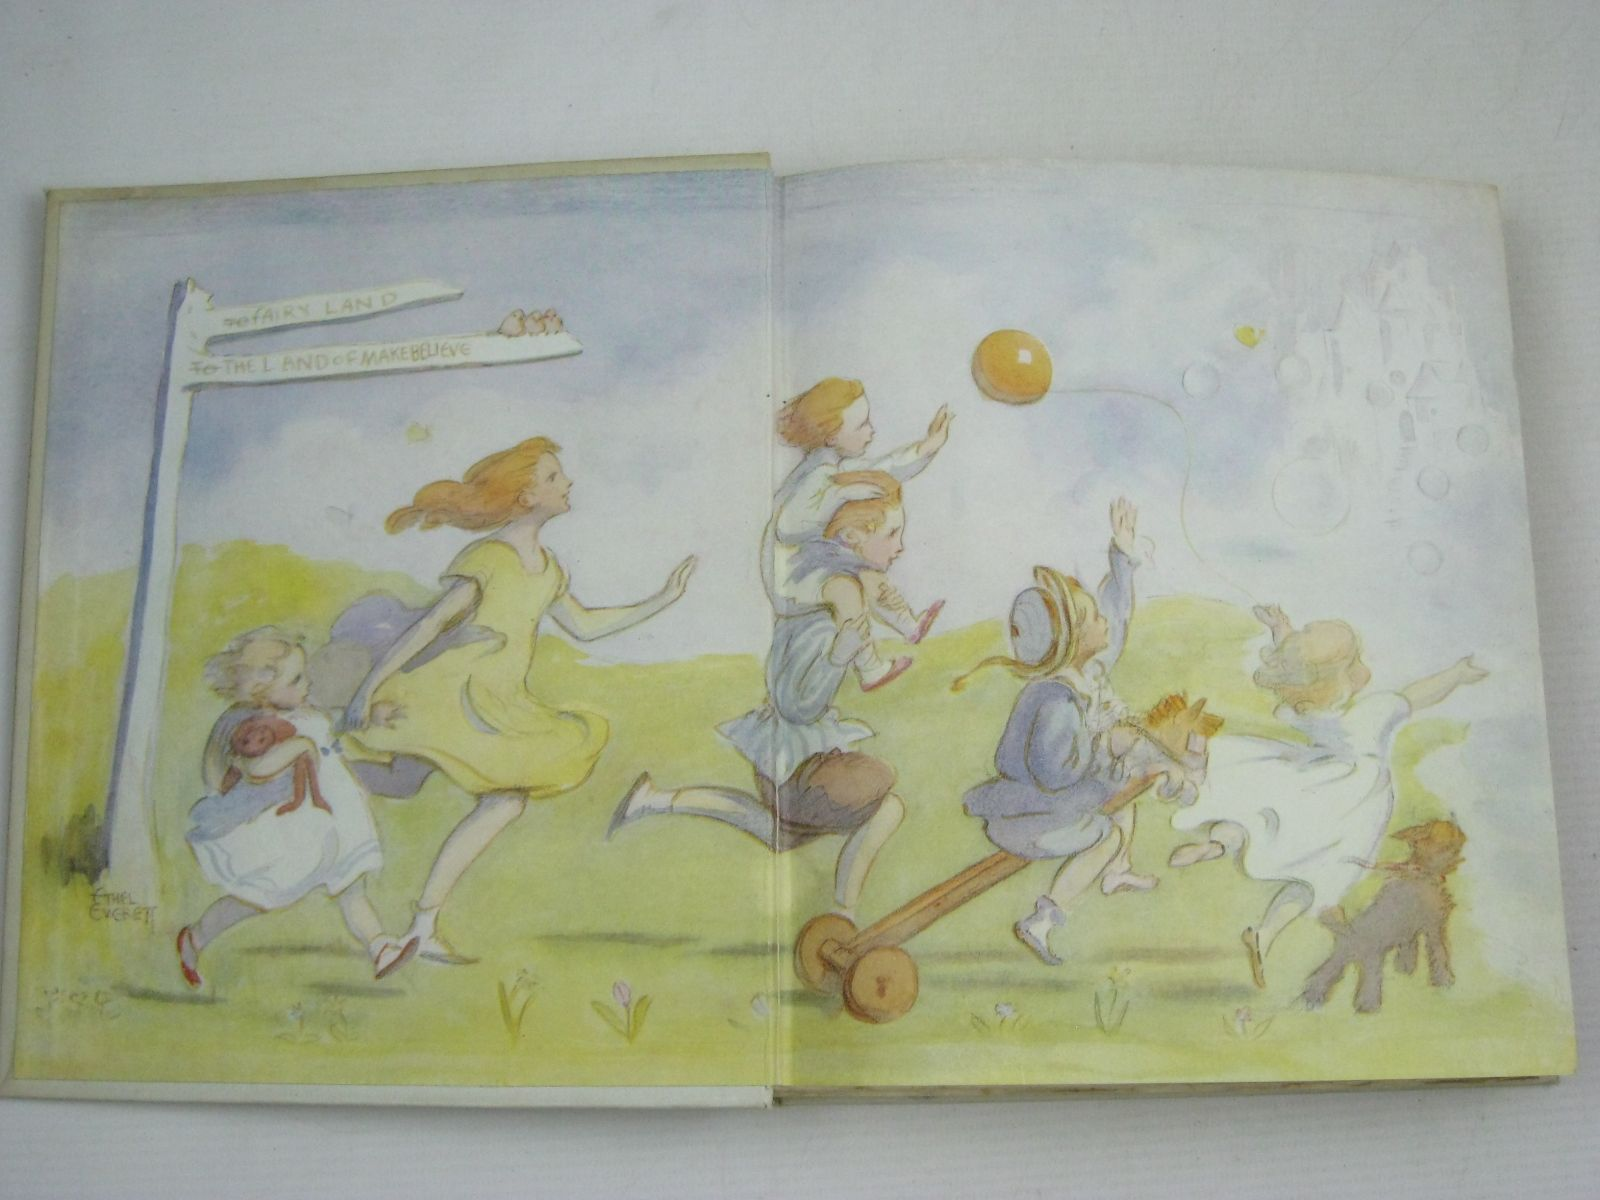 Photo of SILVER AND GOLD written by Blyton, Enid illustrated by Everett, Ethel F. published by Thomas Nelson and Sons Ltd. (STOCK CODE: 1506116)  for sale by Stella & Rose's Books